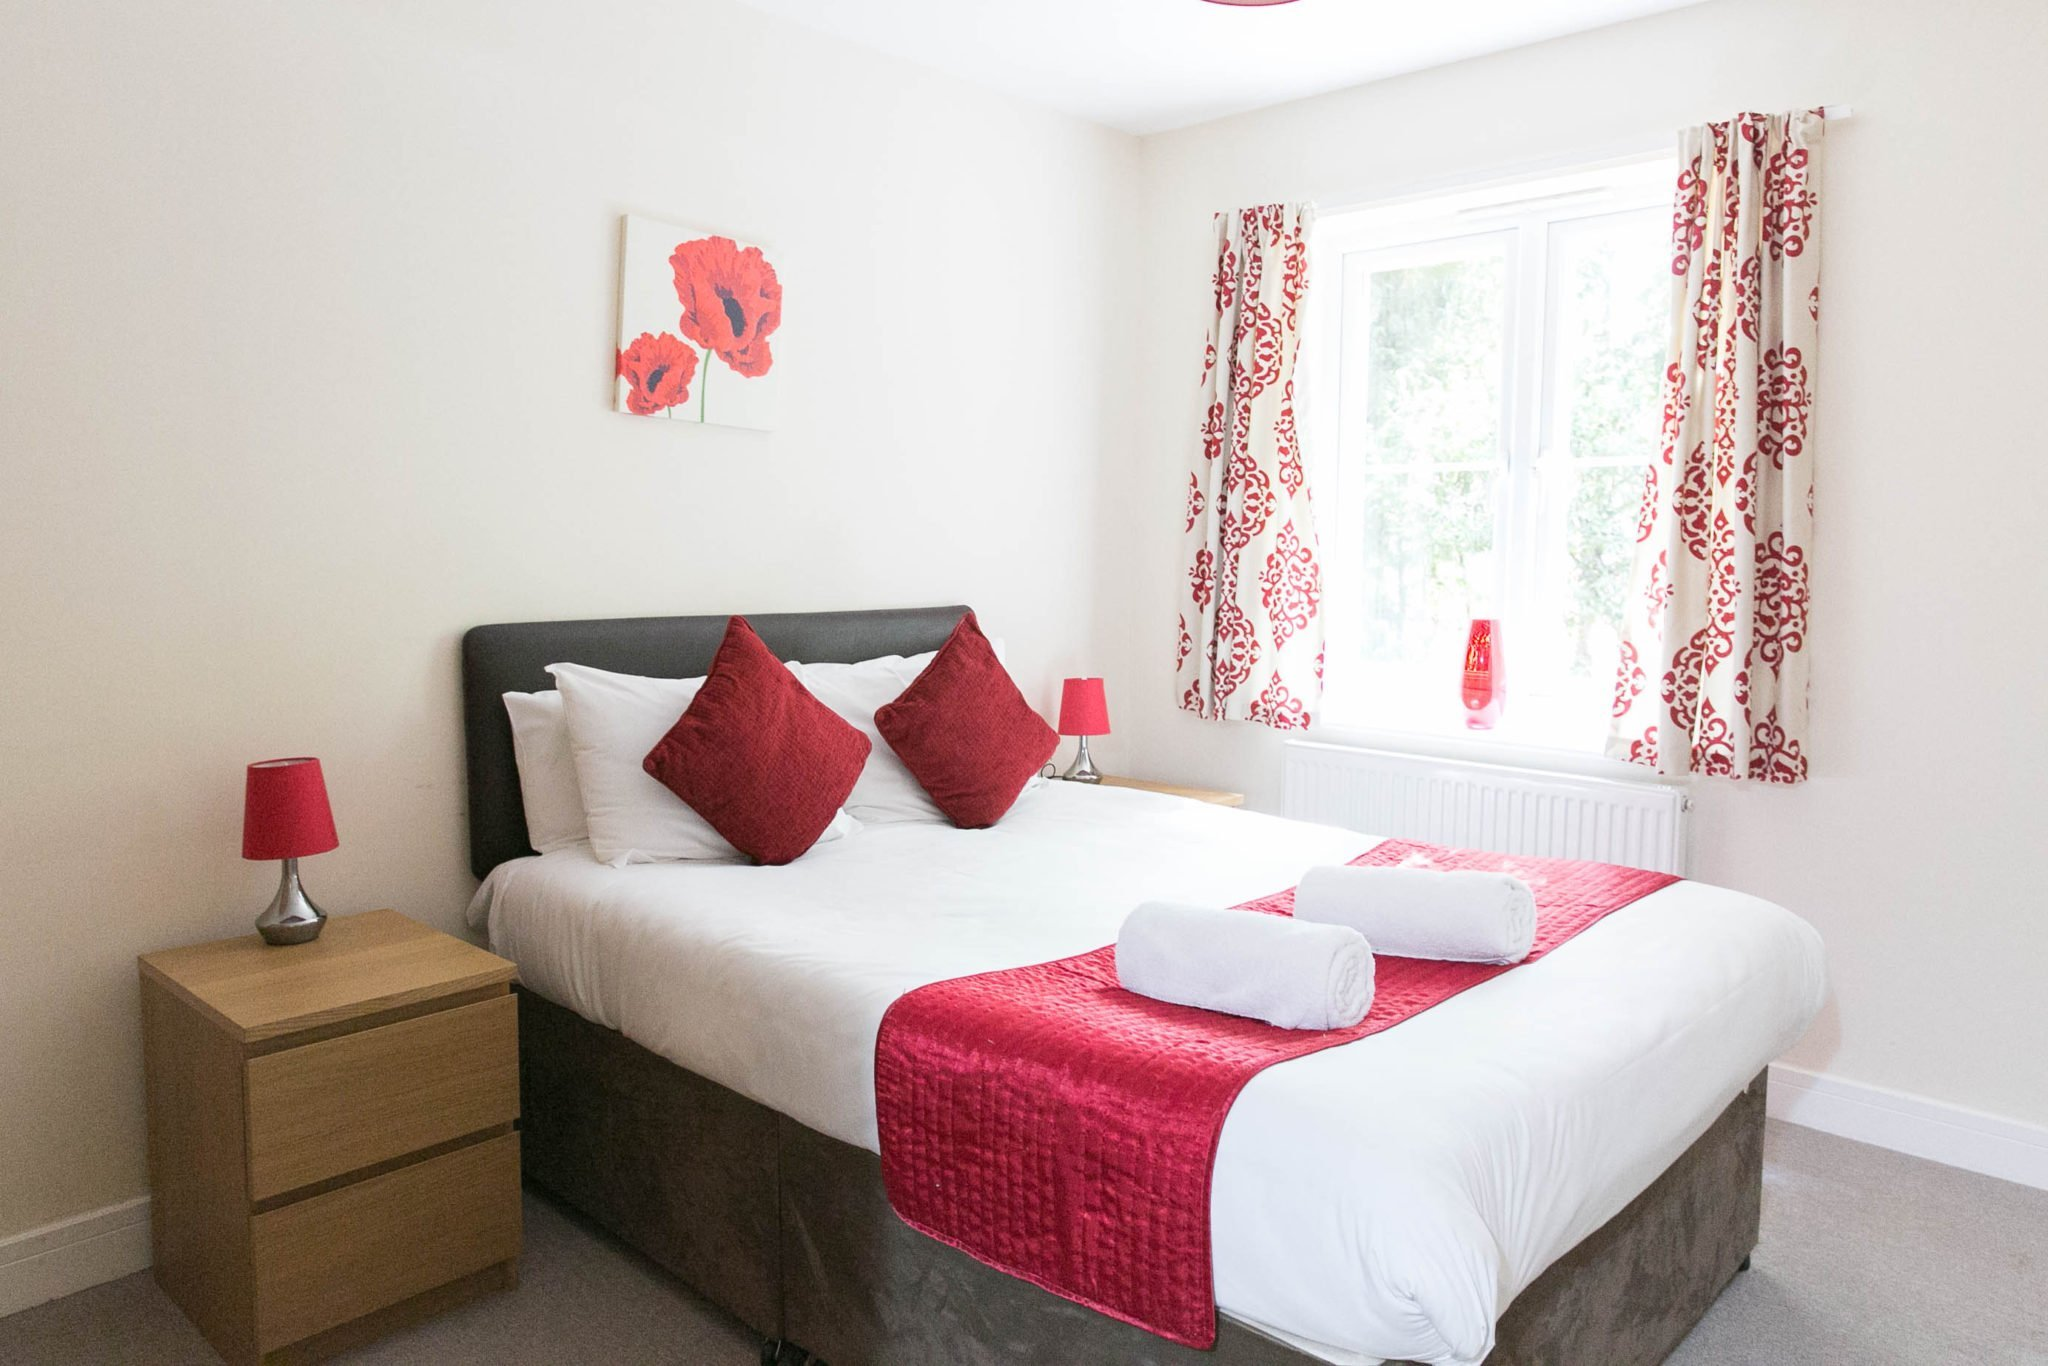 Serviced-Apartments-Camberley-UK-|-Serviced-Corporate-Accommodation-Surrey-|-Short-Lets-Camberley-|-Cheaper-than-Hotel-|-LOW-RATES---NO-FEES---BOOK-NOW---Urban-Stay